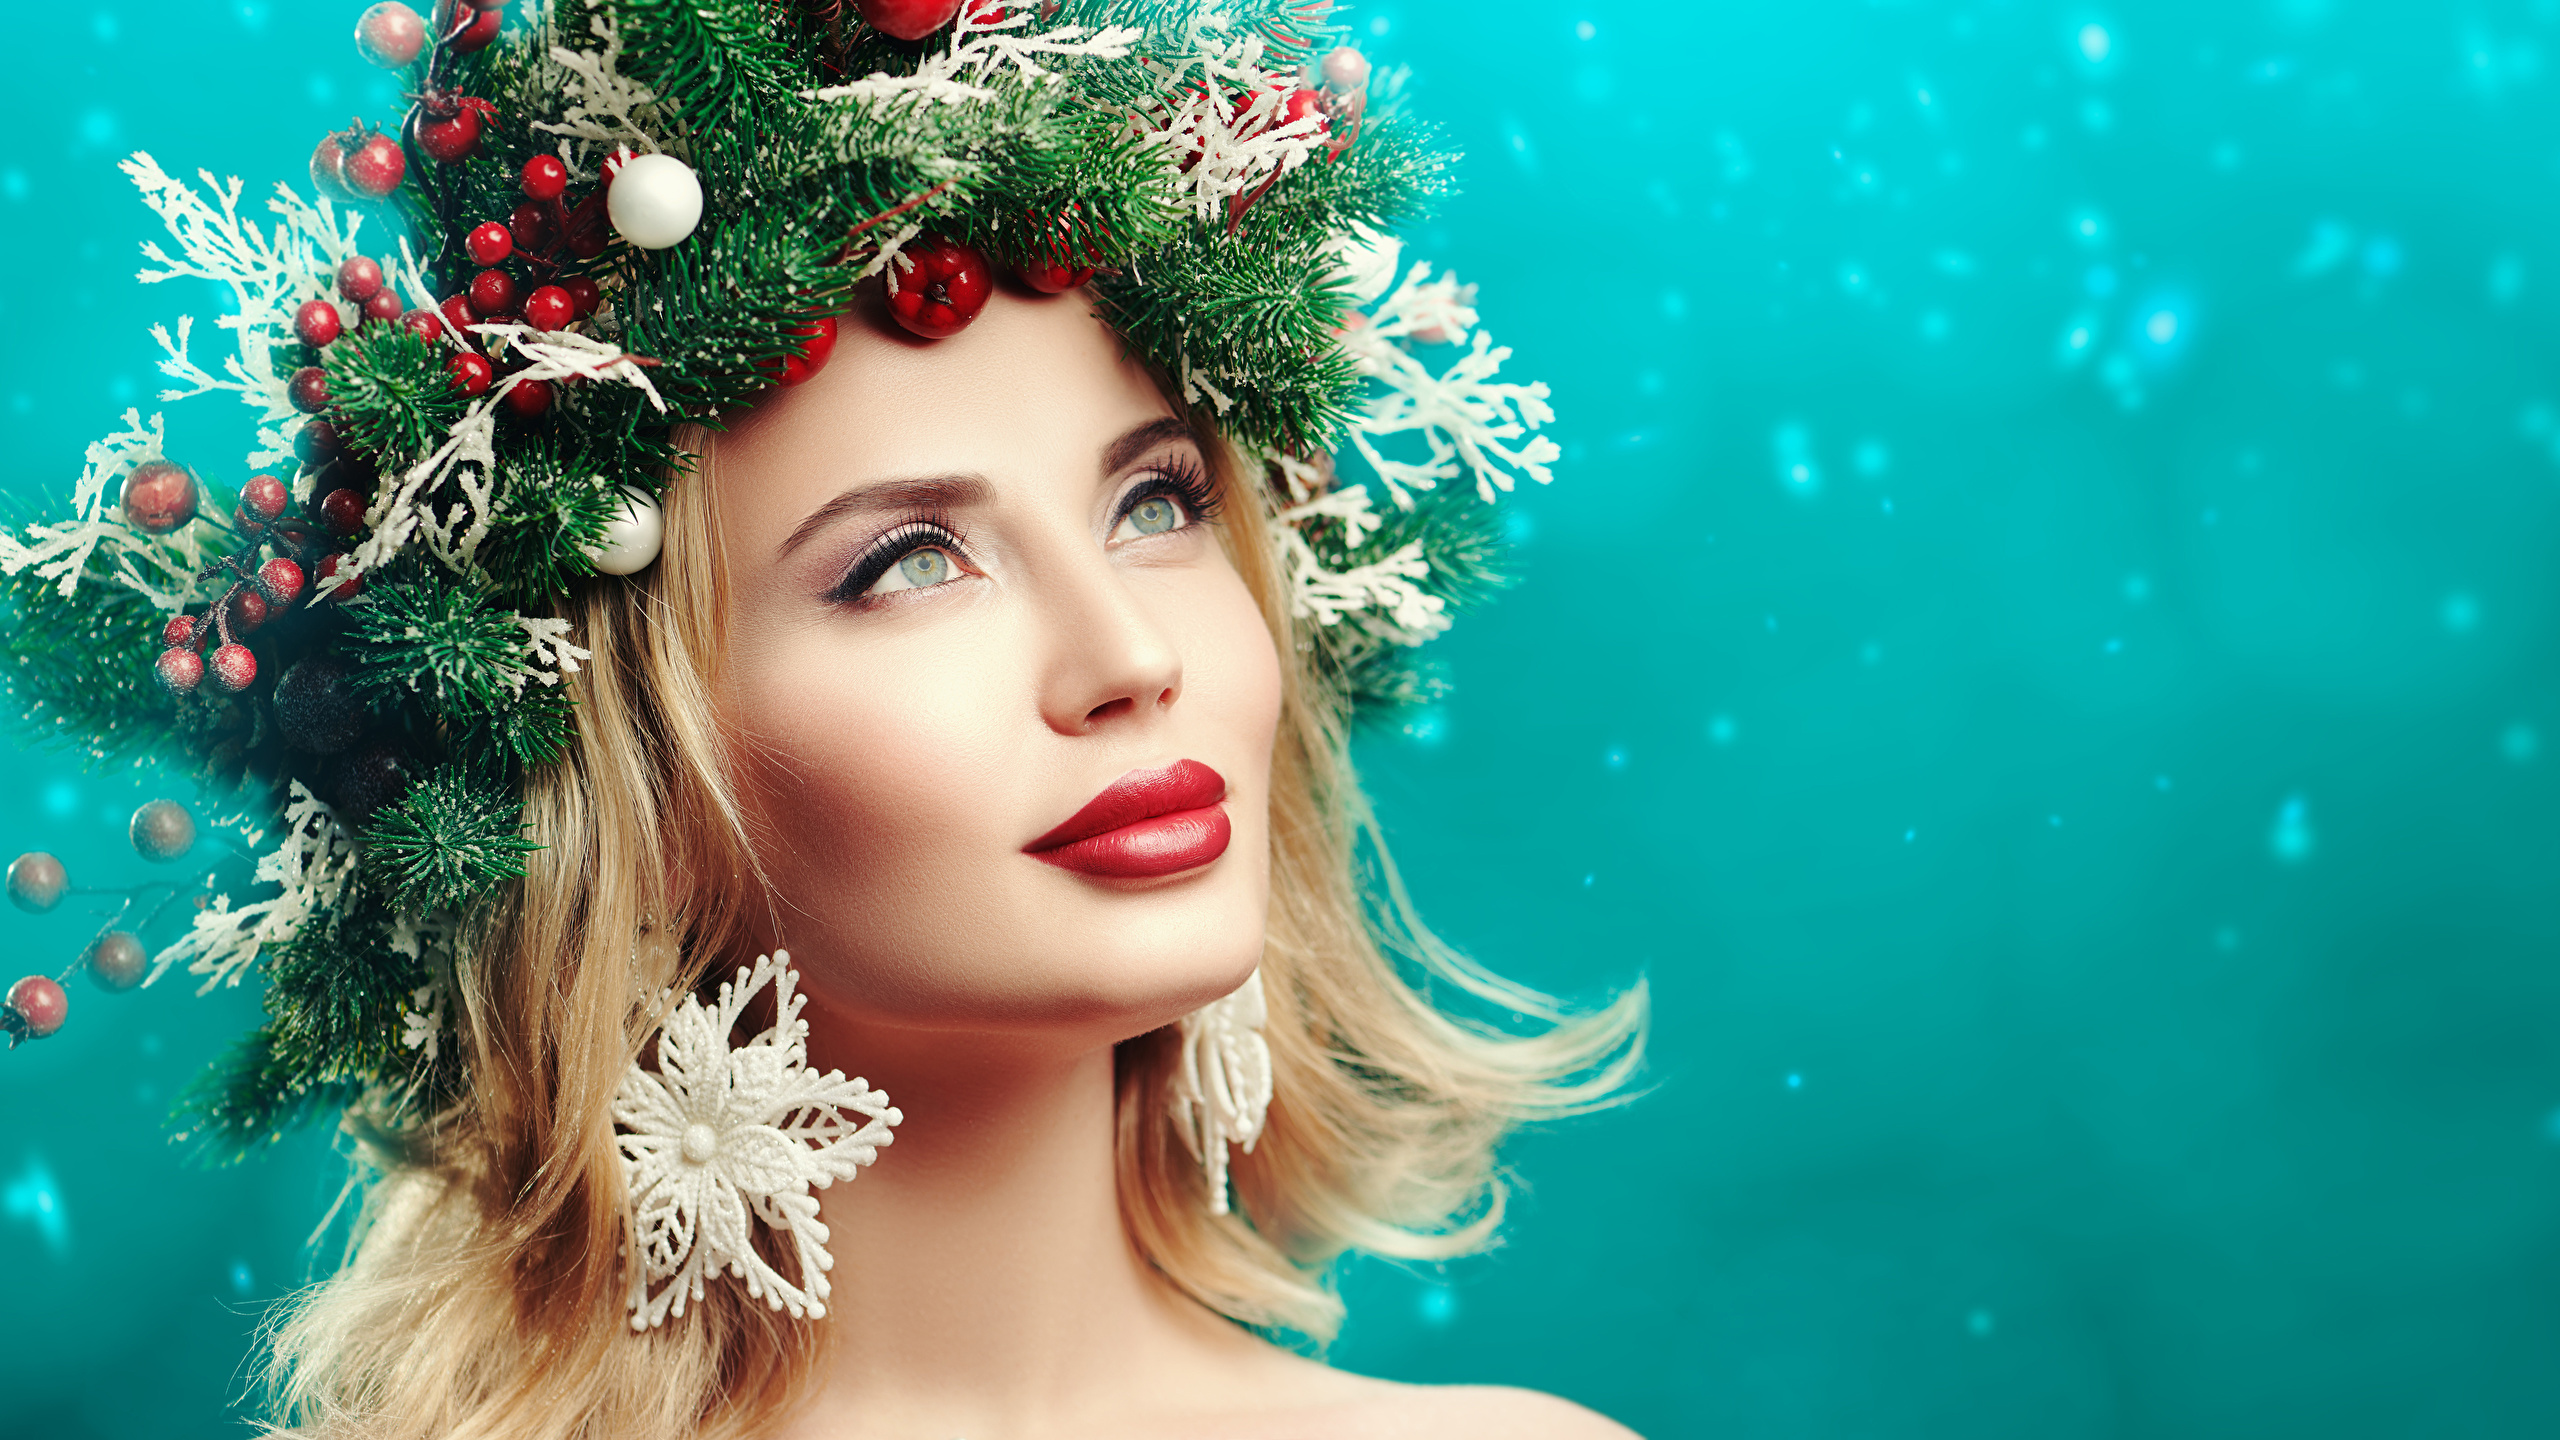 Pictures New Year Blonde Girl Model Makeup Face Female 2560x1440